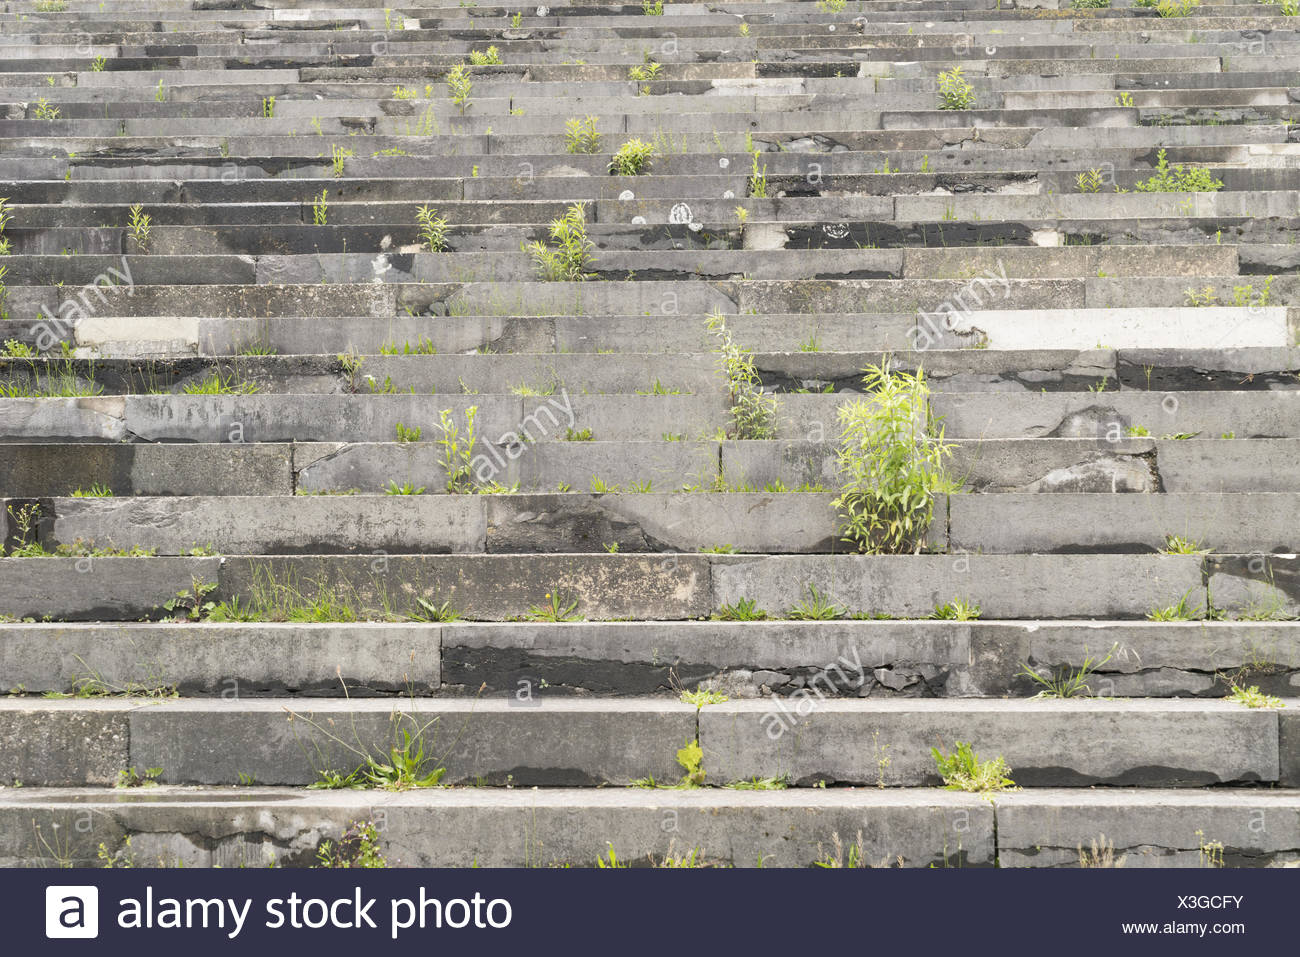 Third Reich Party Rally Grounds Stock Photo